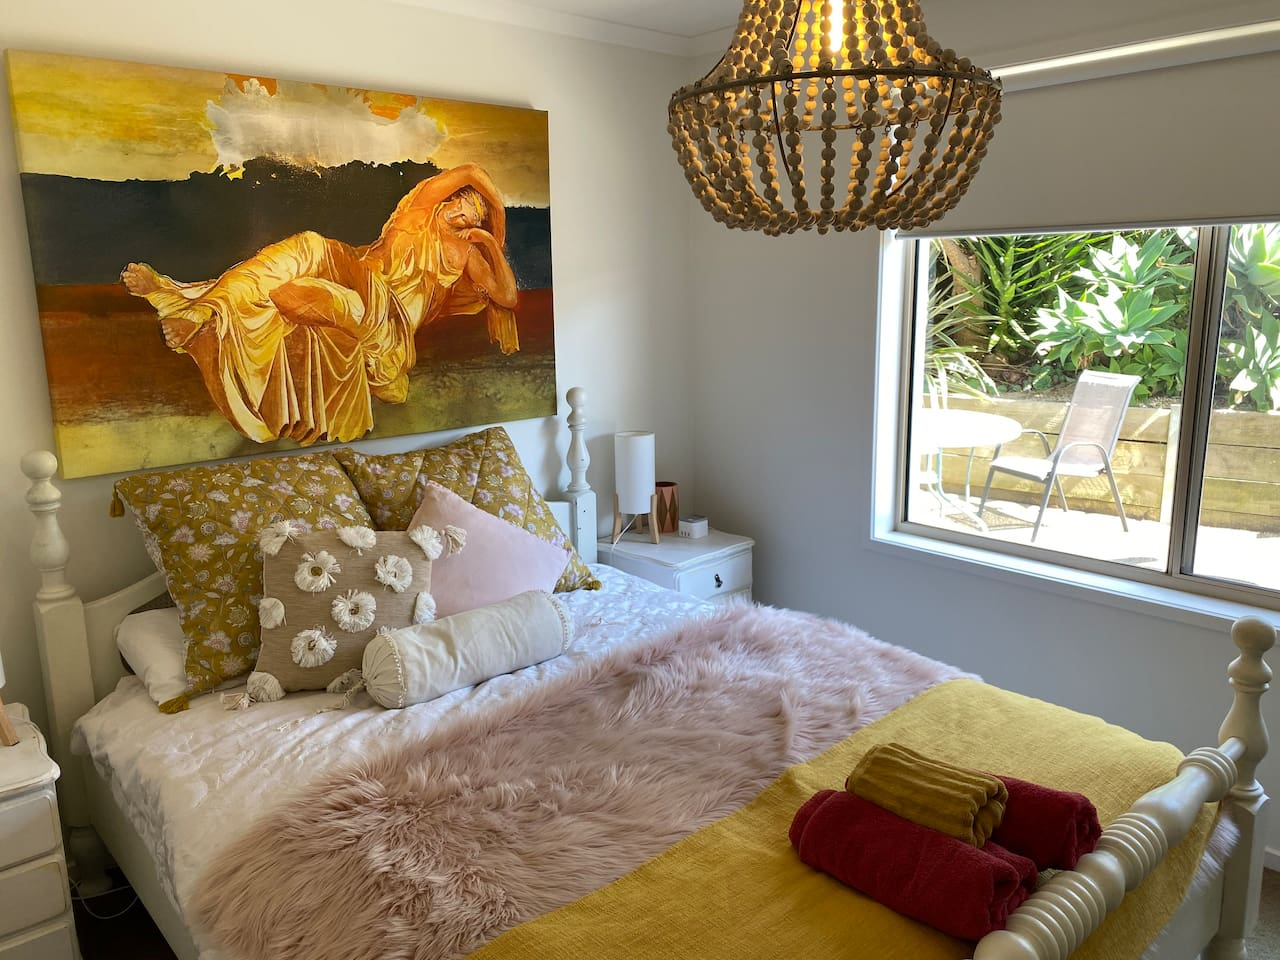 Relax and enjoy the Pillow top comfy bed and beautiful outlook to a garden filled with little birds and native flowers.  Relaxing decore provides a tranquil getaway . Phone charger extra pillows and blankets provided at no extra charge.